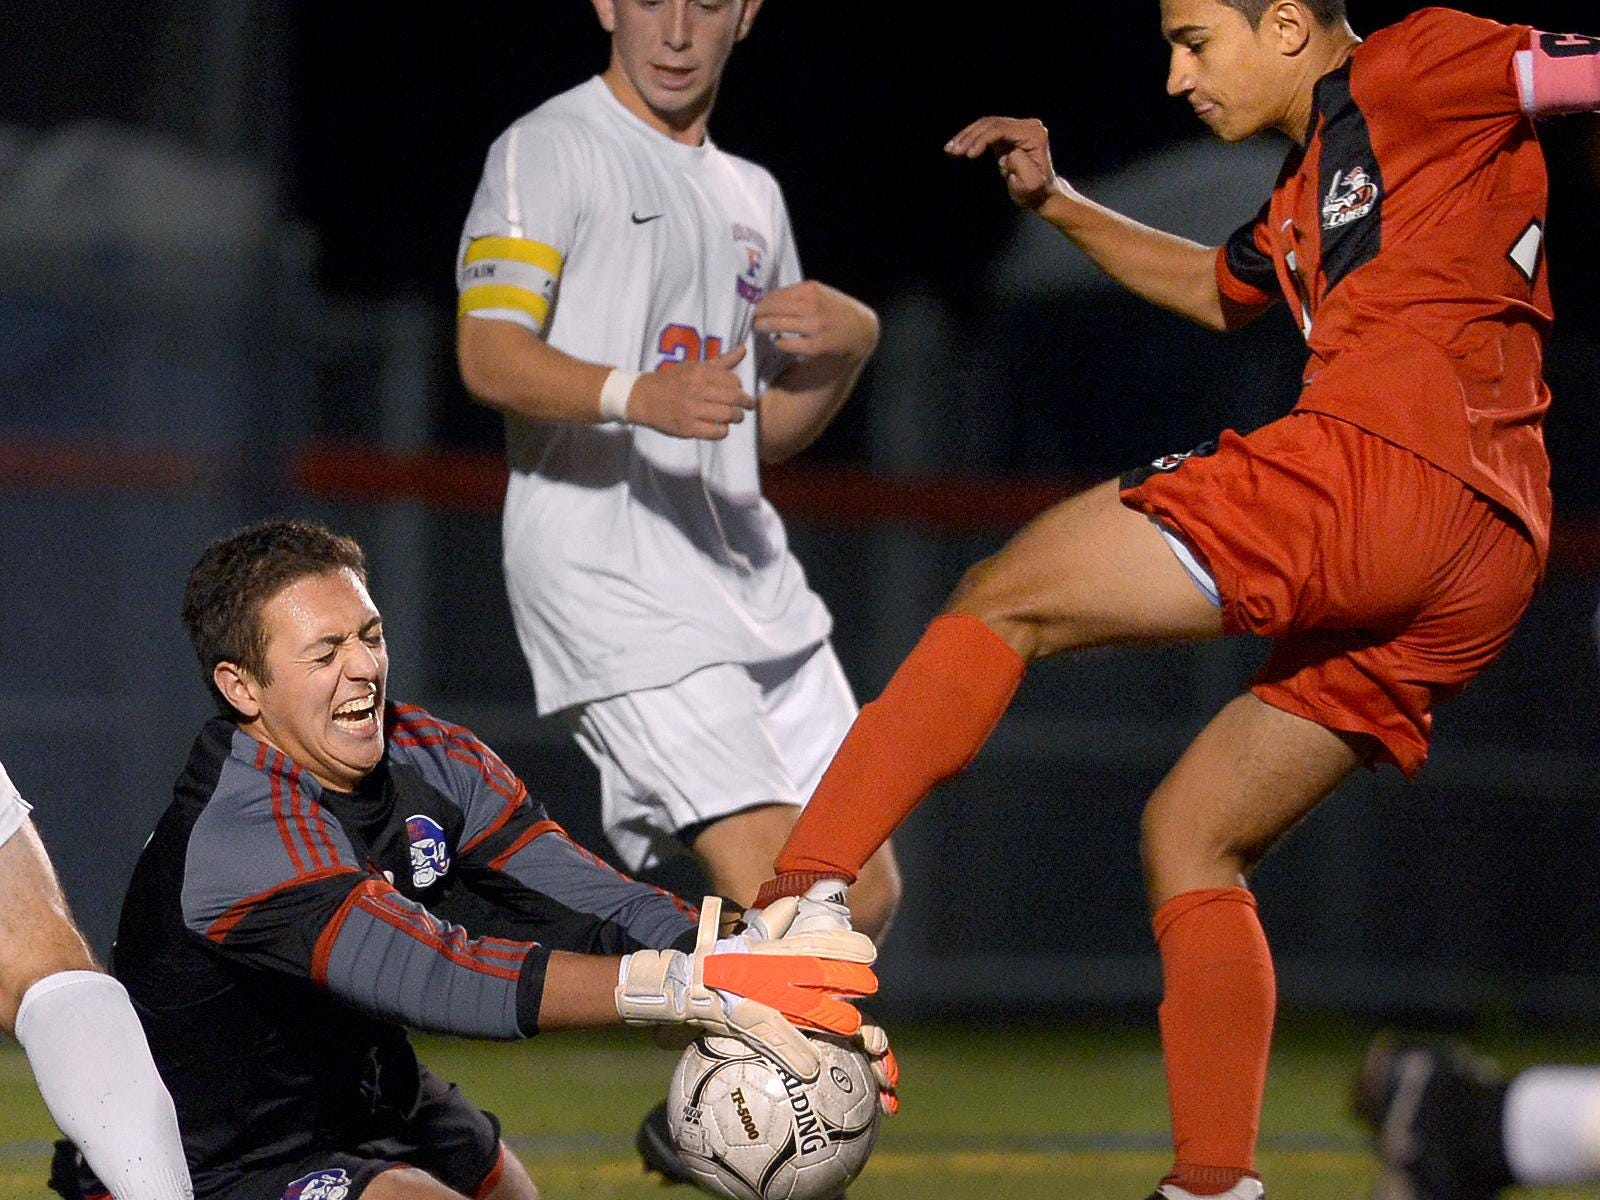 Fairport goalie John Flannery smothers the ball off the foot of HiltonÕs Matthew DeFeo during a regular season game at Fairport High School on Wednesday, Oct. 5, 2016. Fairport and Hilton played to a 3-3 draw.